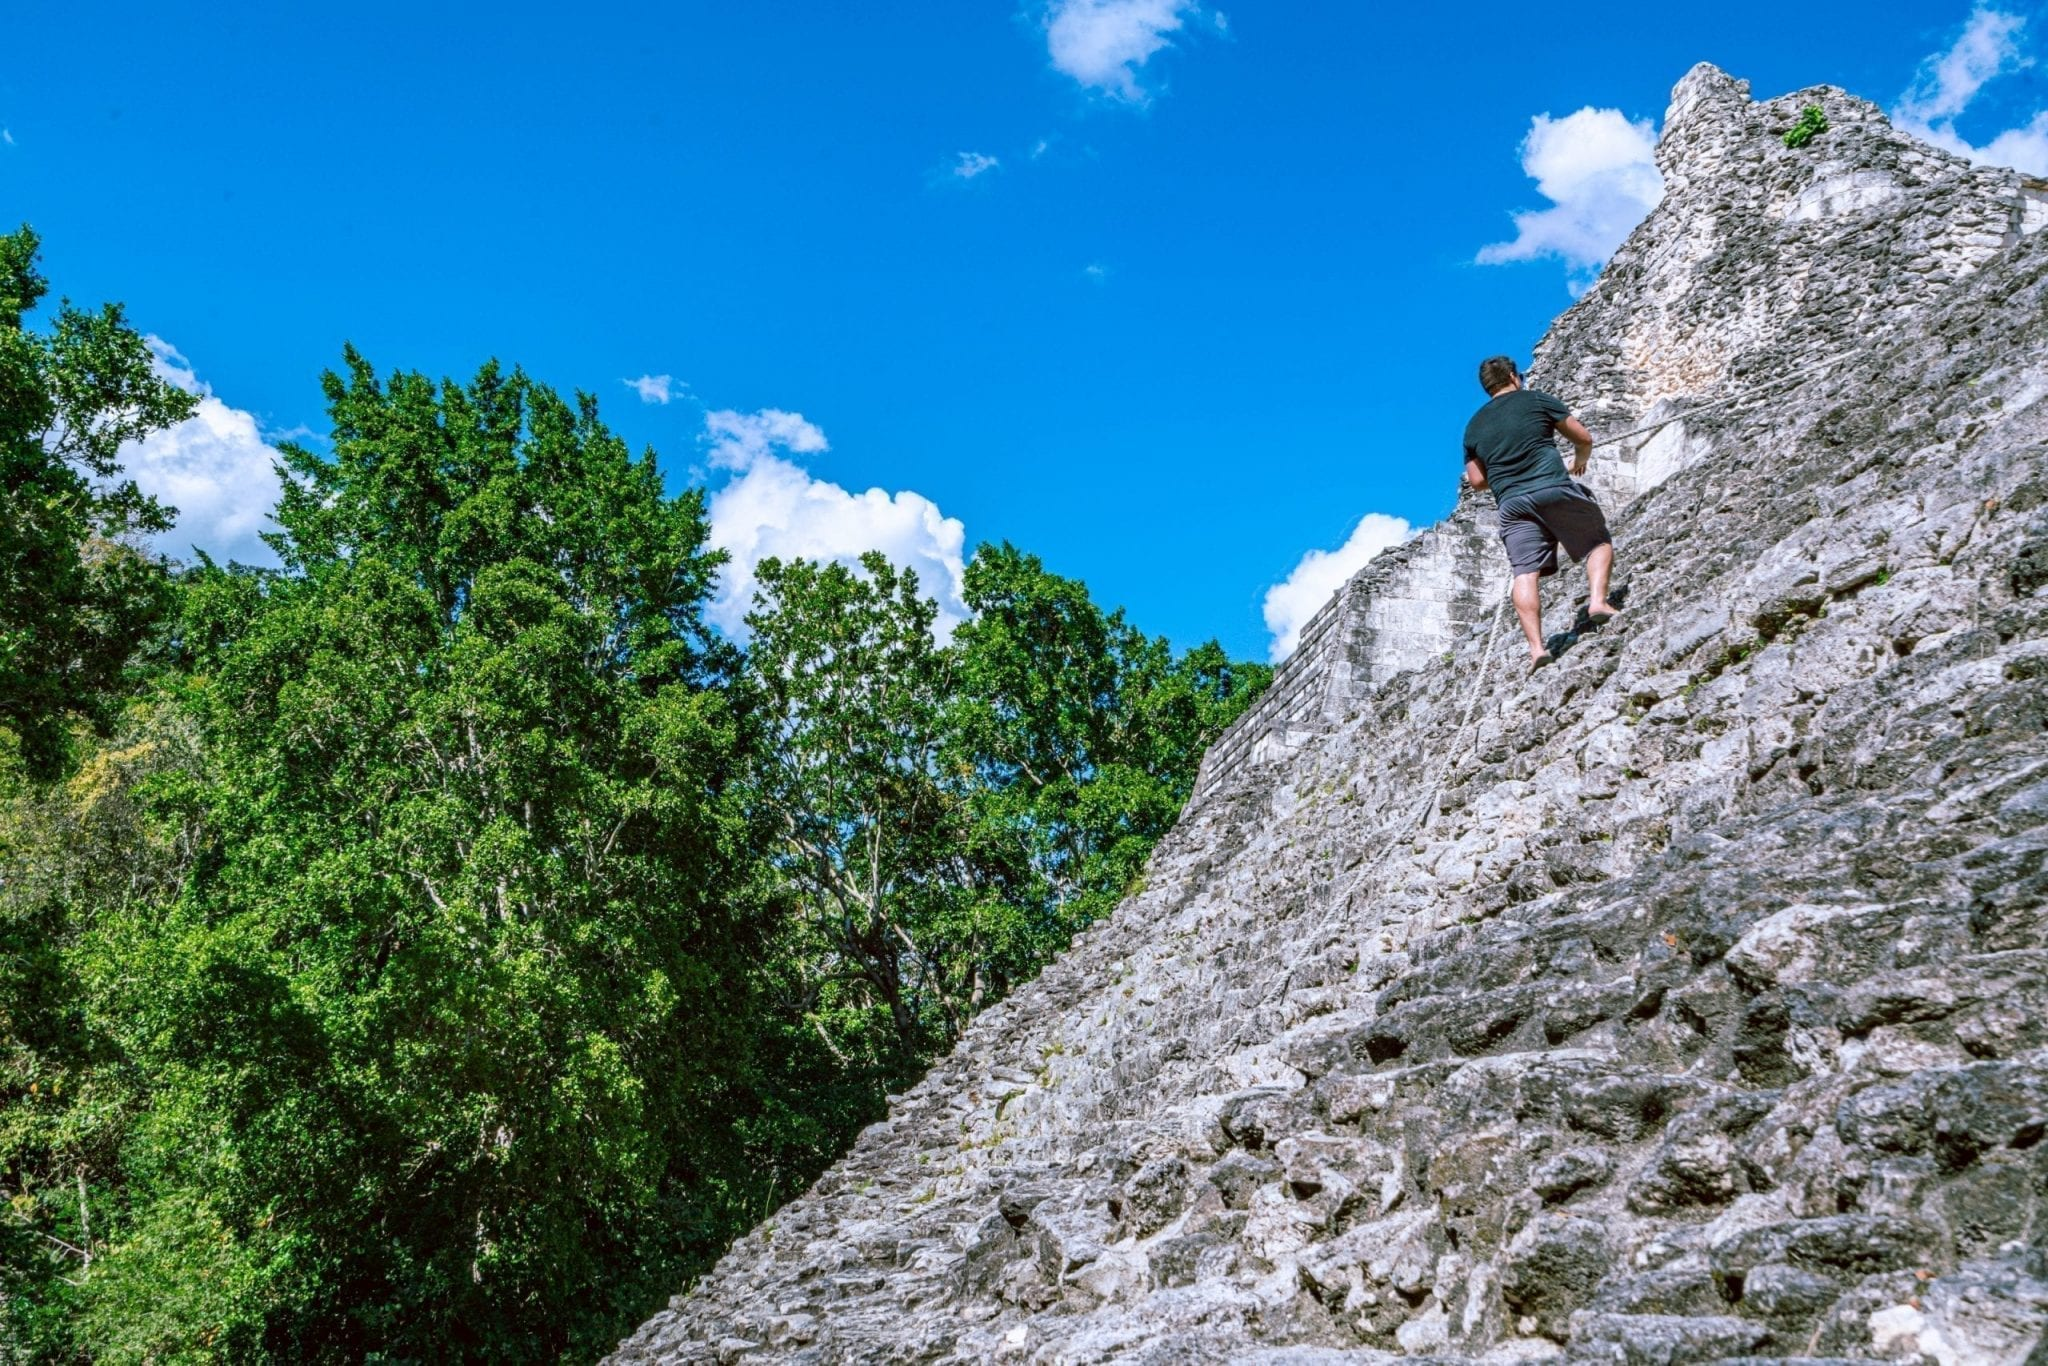 Jeremy Storm climbing a pyramid at the Becan Ruins in Mexico, wearing a black t shirt and pulling on a rope for support